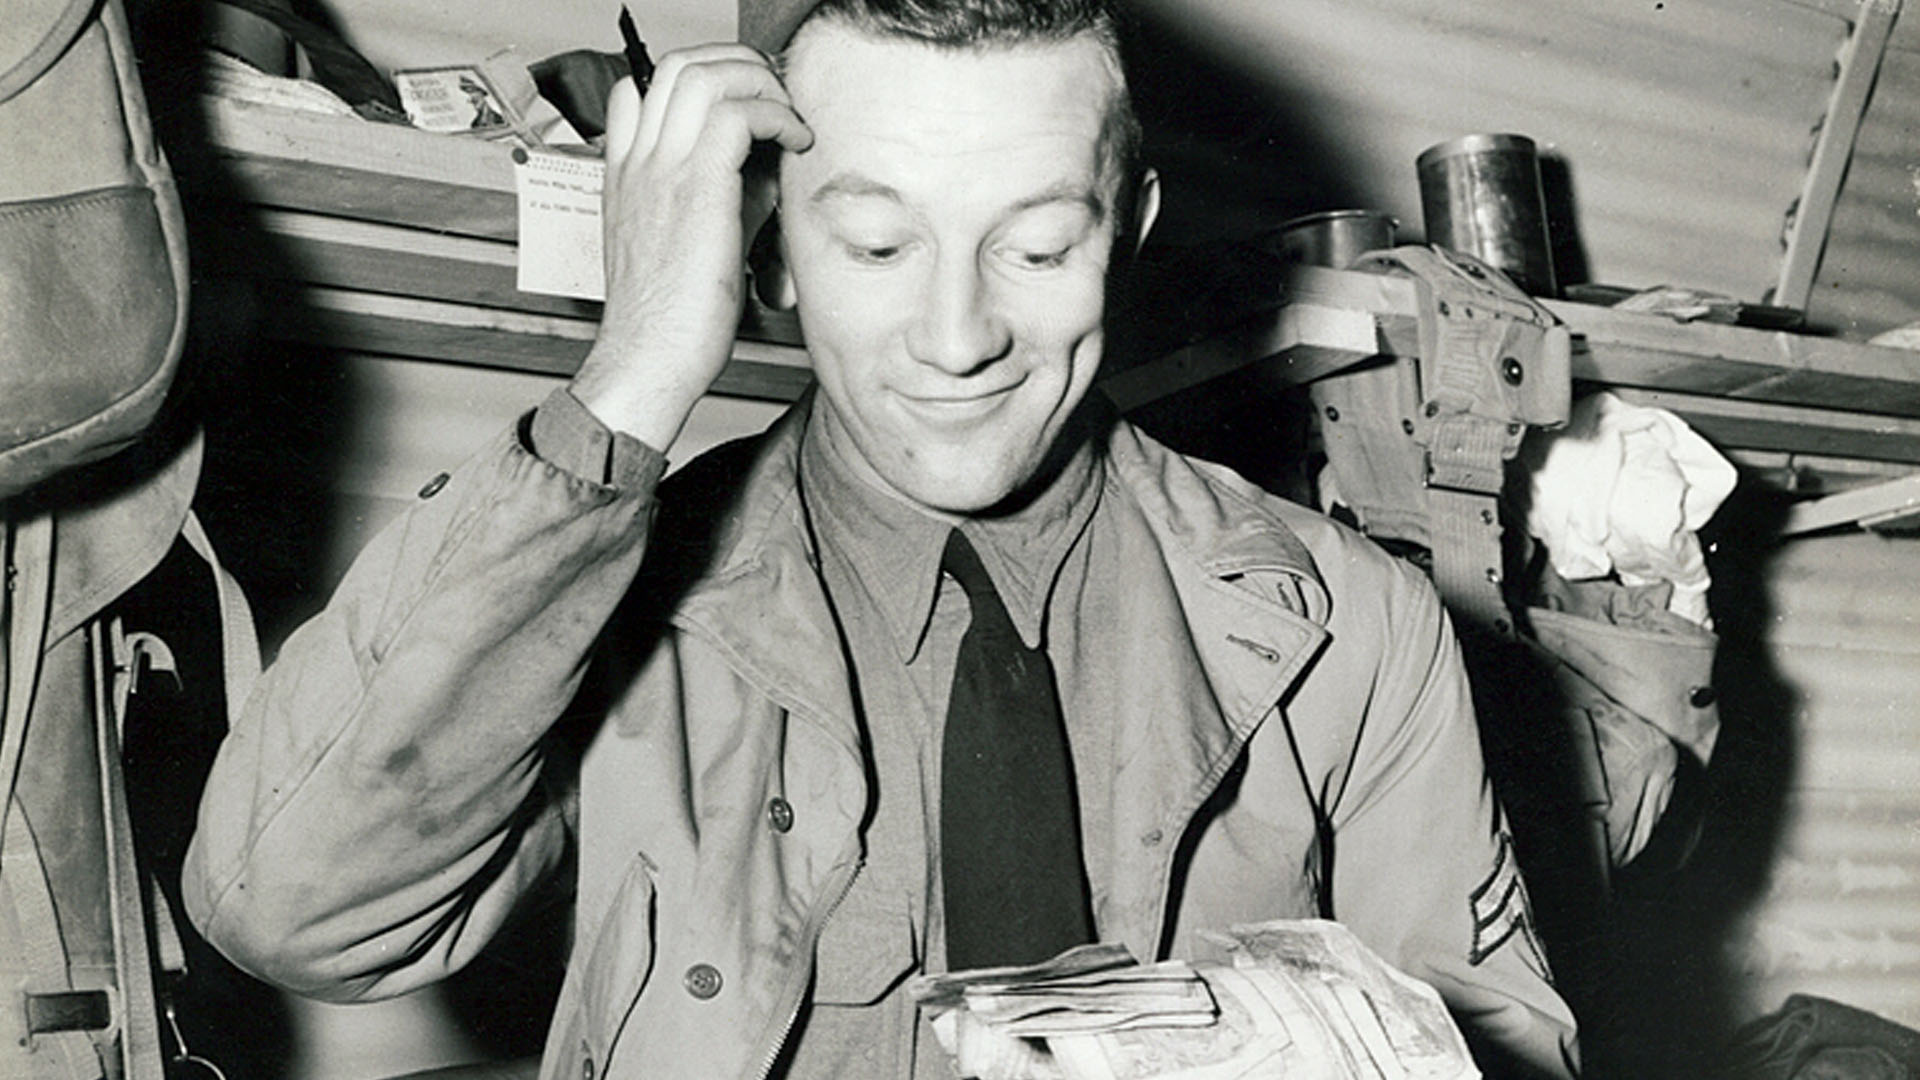 Washington County Free Library Photo WCRH019. Part of the General Russell P Hartle Collection. An American GI struggles to make head nor tail of British currency after the US Army's first payday in Northern Ireland. Photo taken on 16th March 1942. Copyright United States Signal Corps.